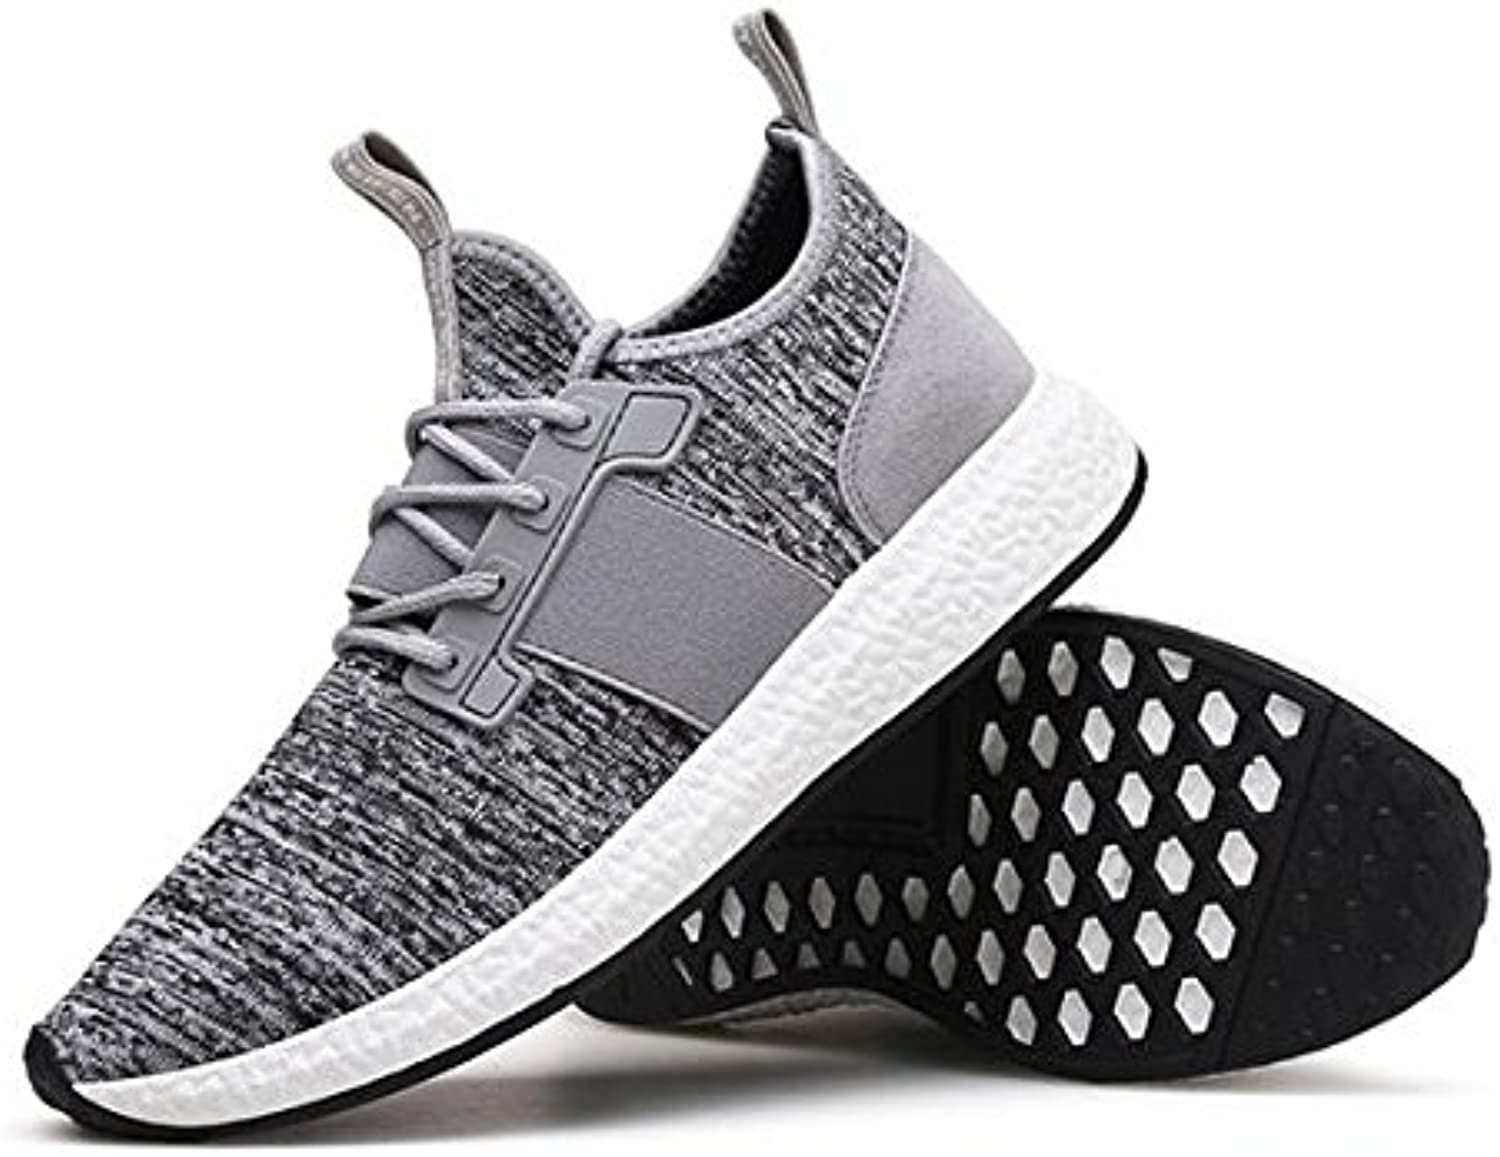 Otado Outdoors Clothing & shoes - Men Korean Flying Woven Sneakers Breathable Light Increasing Height Running shoes - (Size(US)  7.5, color  Grey)